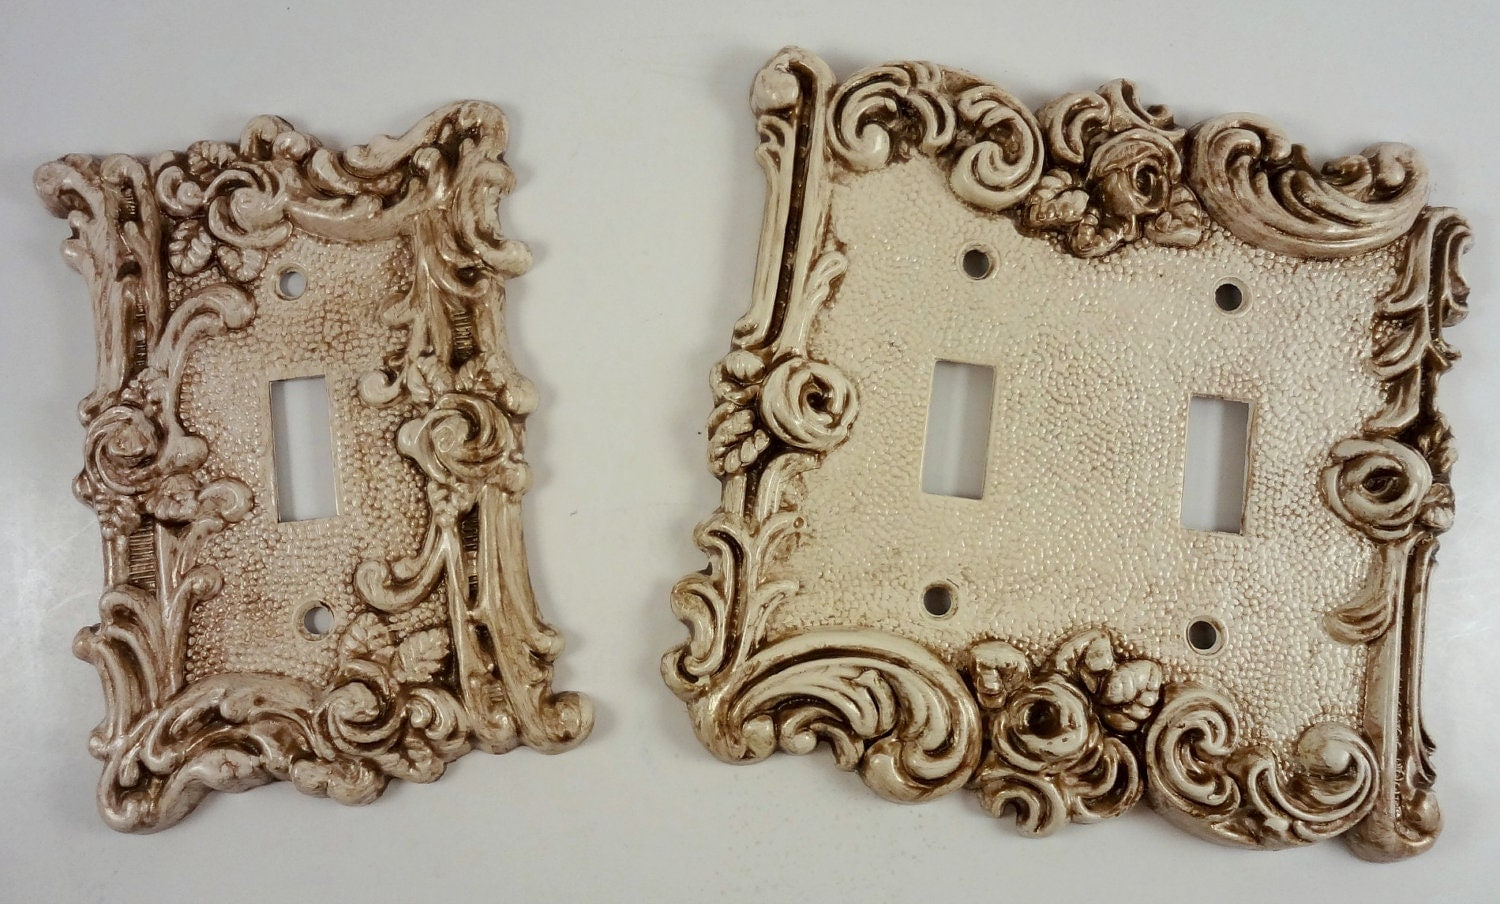 Vintage Metal Light Switch Covers Upcycled By Rockintherust